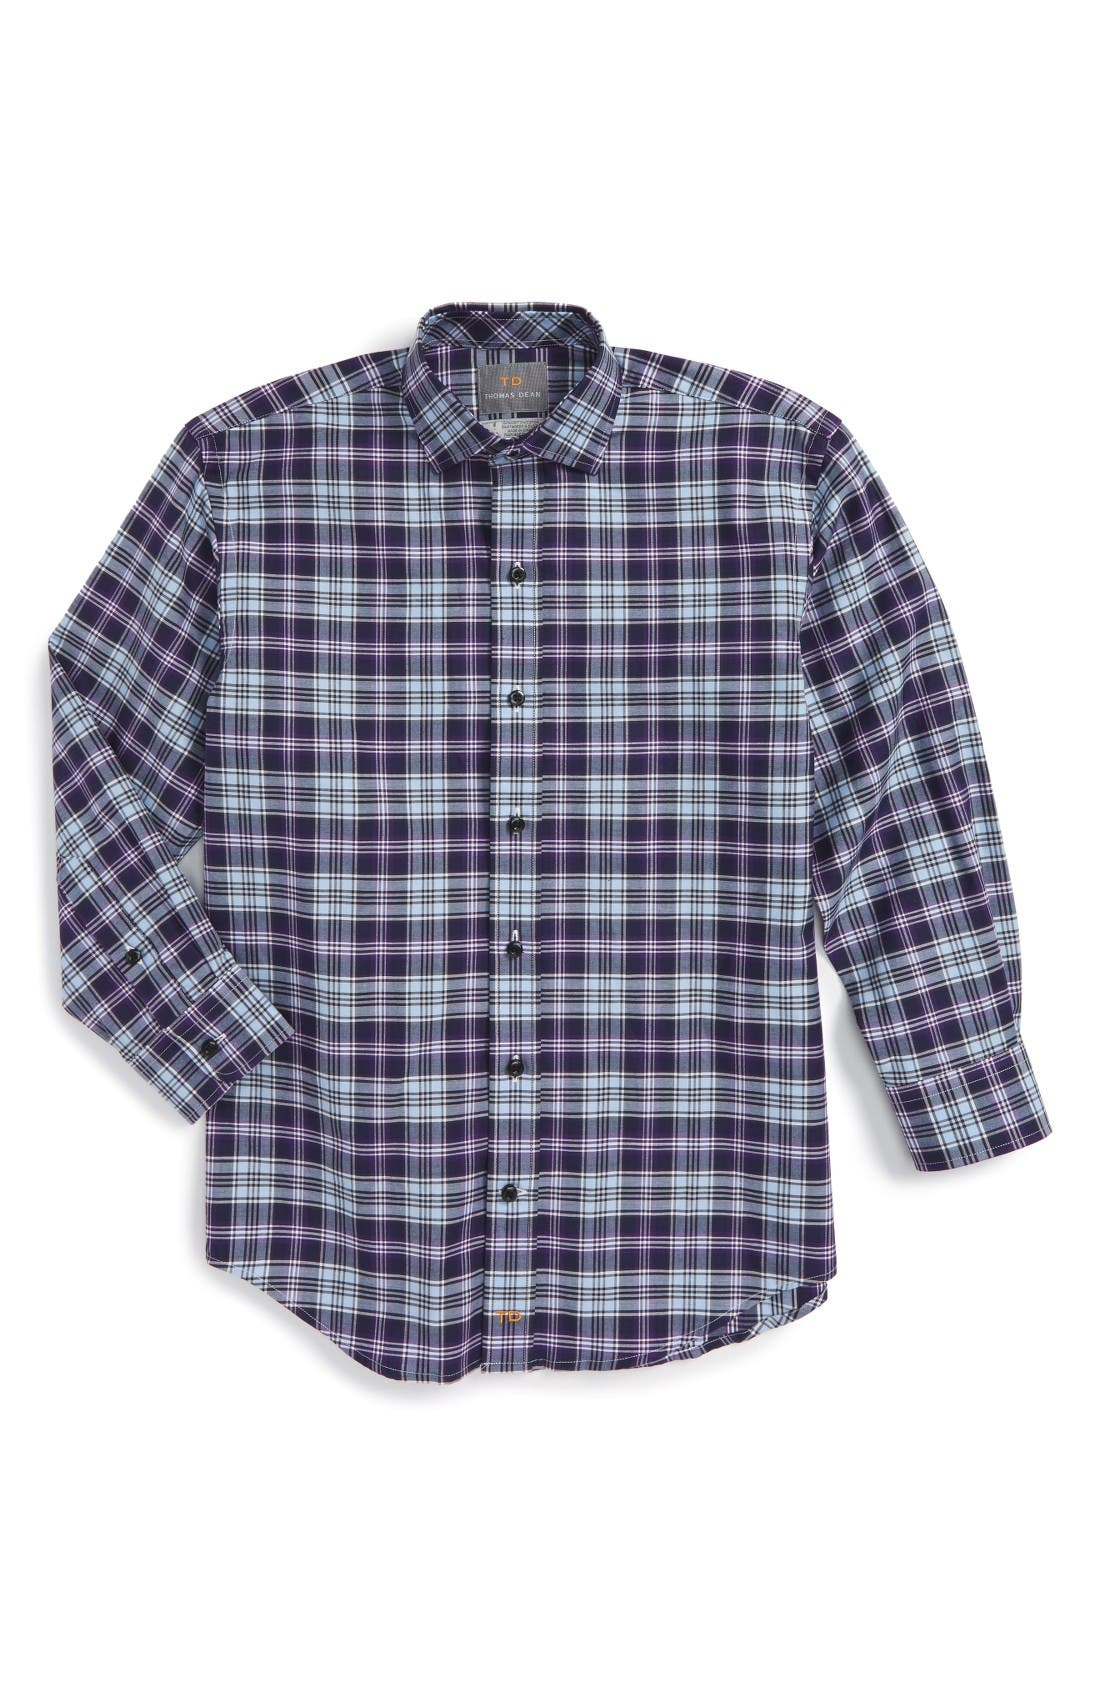 Alternate Image 1 Selected - Thomas Dean Plaid Dress Shirt (Little Boys & Big Boys)